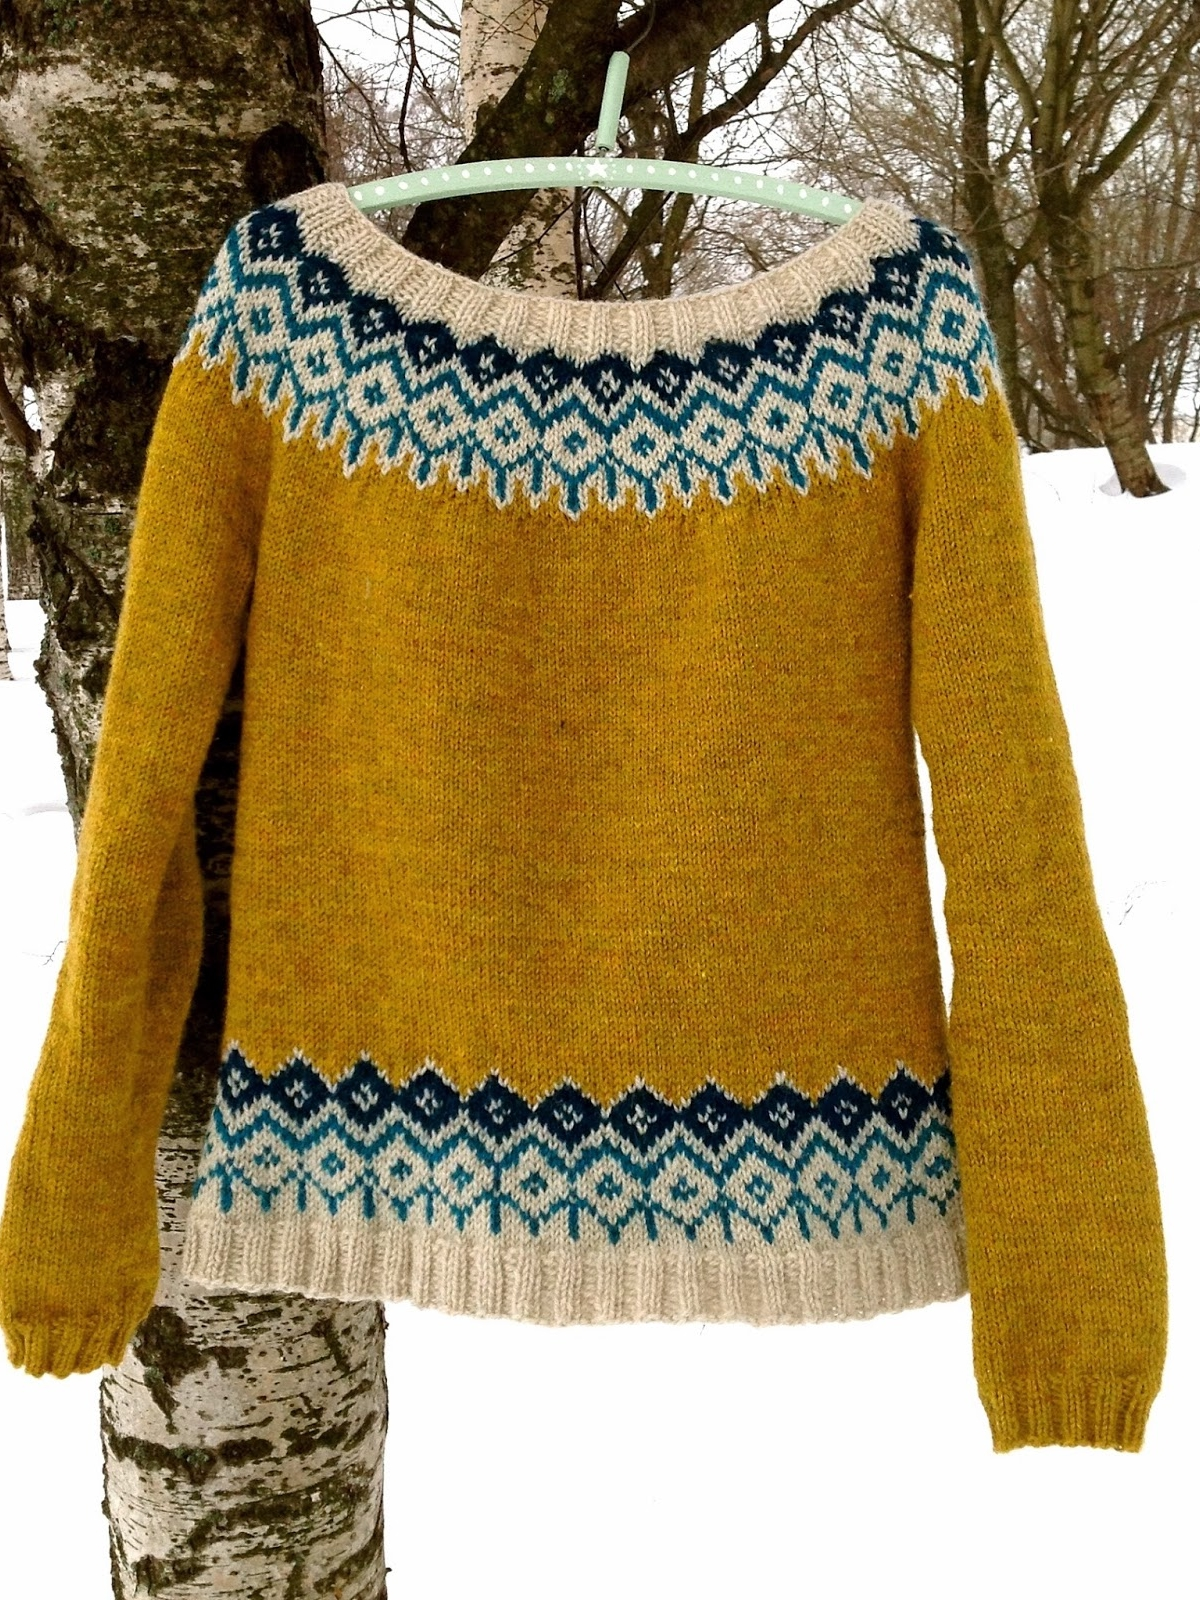 The Yellow Queen sweater